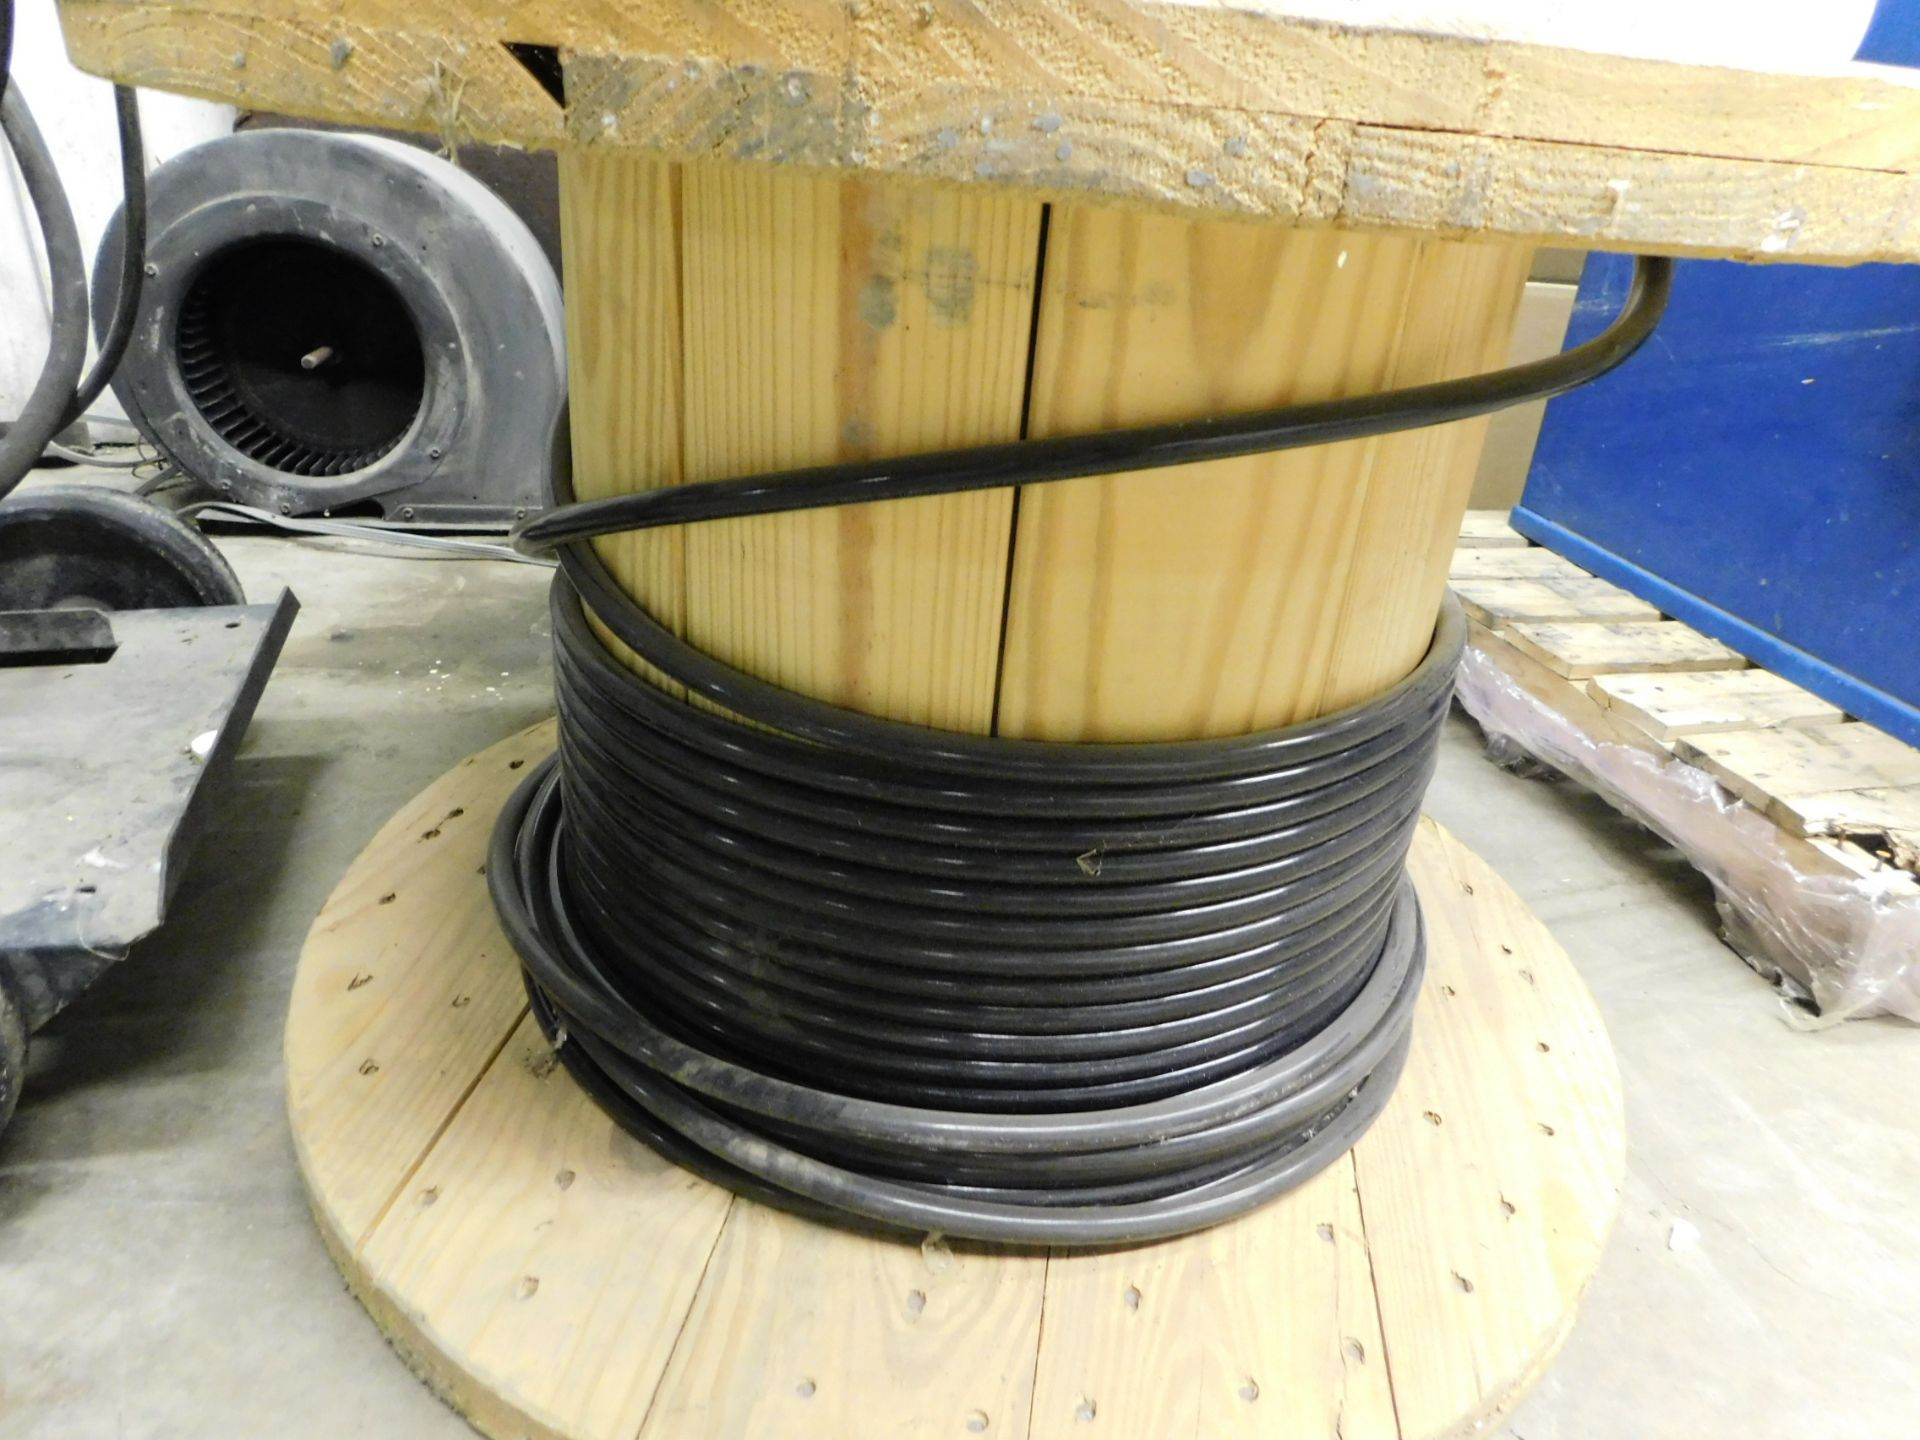 Lot 5 - Wooden Spool with Copper Wire, Lot Location: 301 Poor Dr., Warsaw, IN, 46580